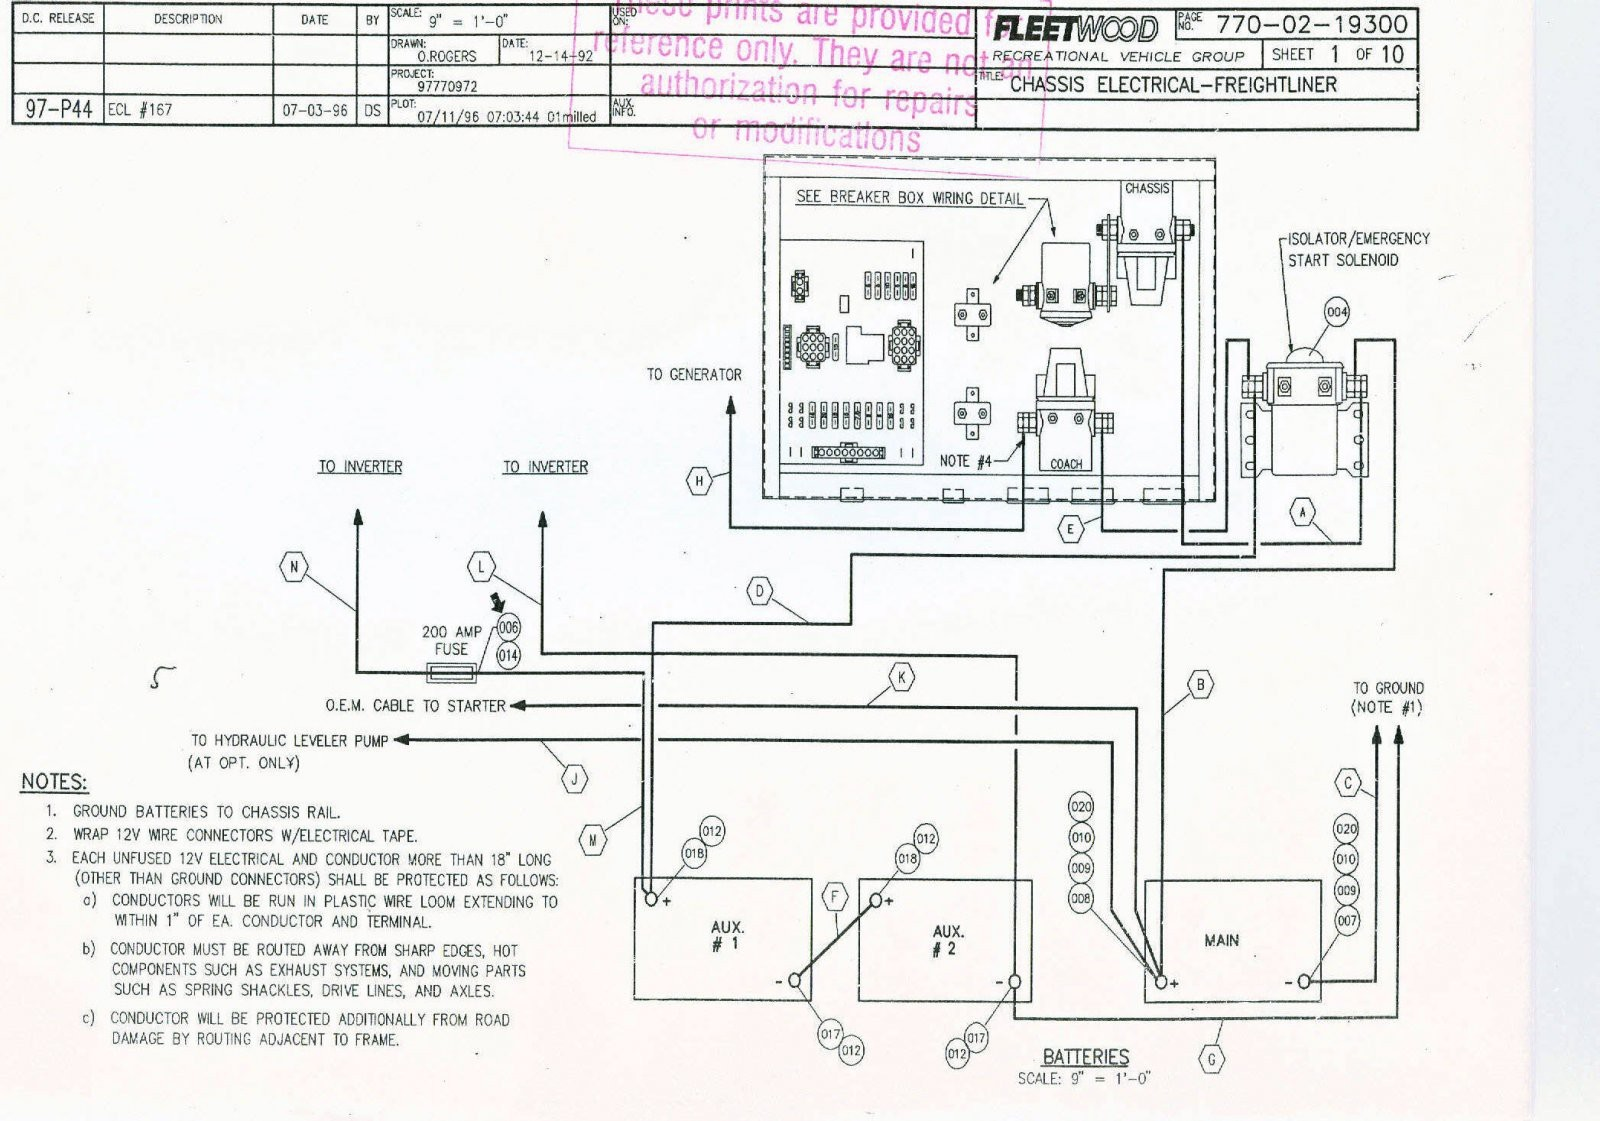 diagram] 1988 bounder rv wiring diagrams full version hd quality wiring  diagrams - psiwiringpdf.lecochondor.fr  wiring and fuse database